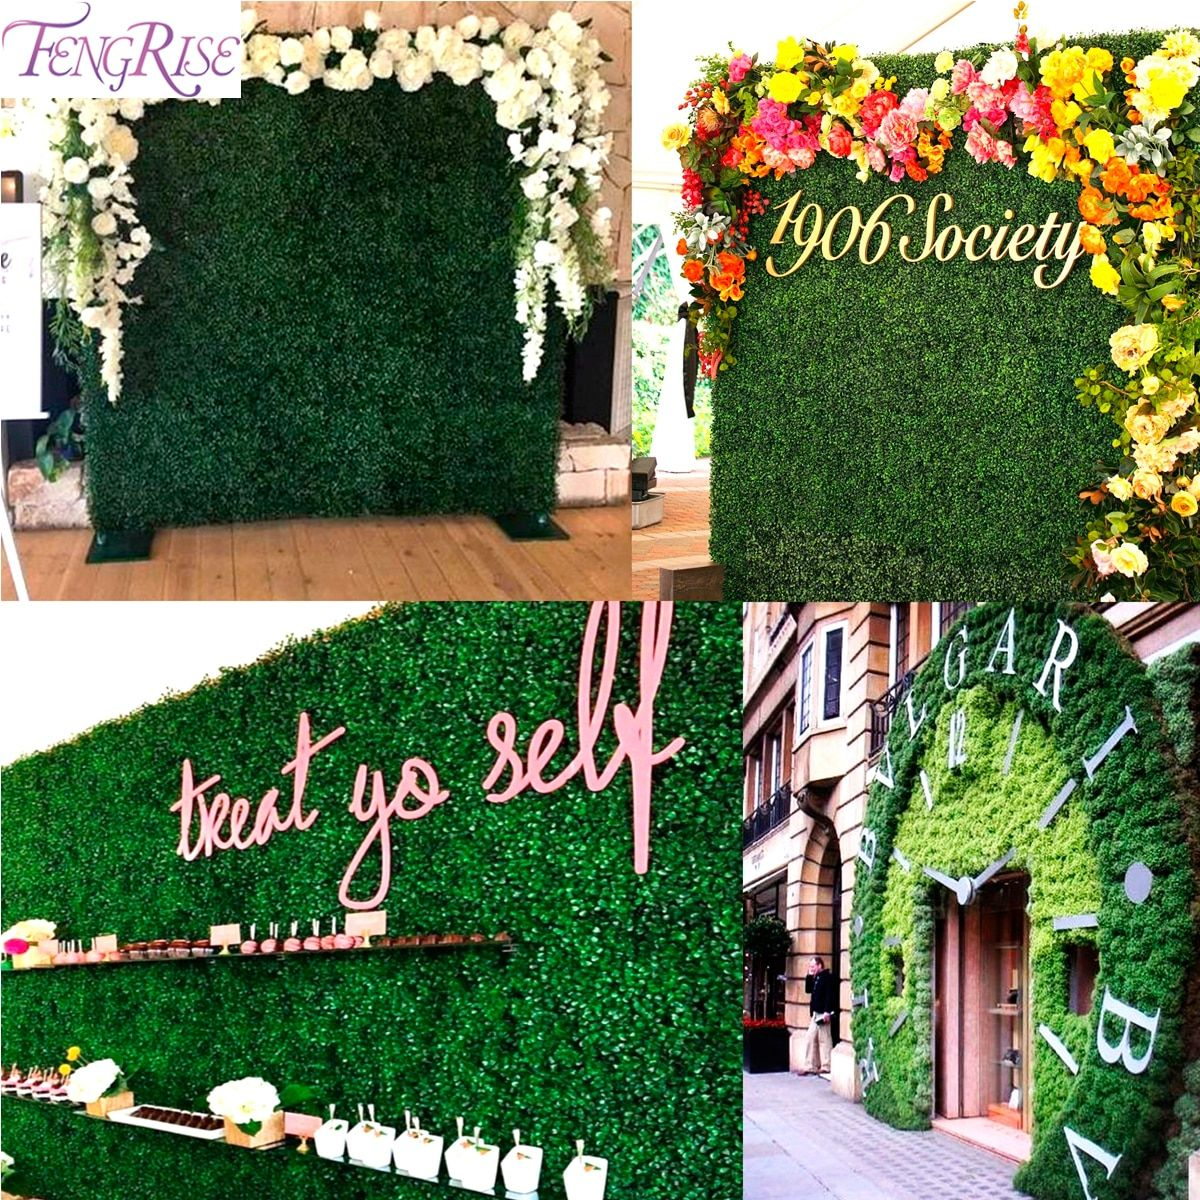 Fengrise 40x60cm Artificial Plant Fake Artificial Grass Decor Wedding Photography Backdrop Eucalyptus P Artificial Plants Grass Backdrops Artificial Grass Wall